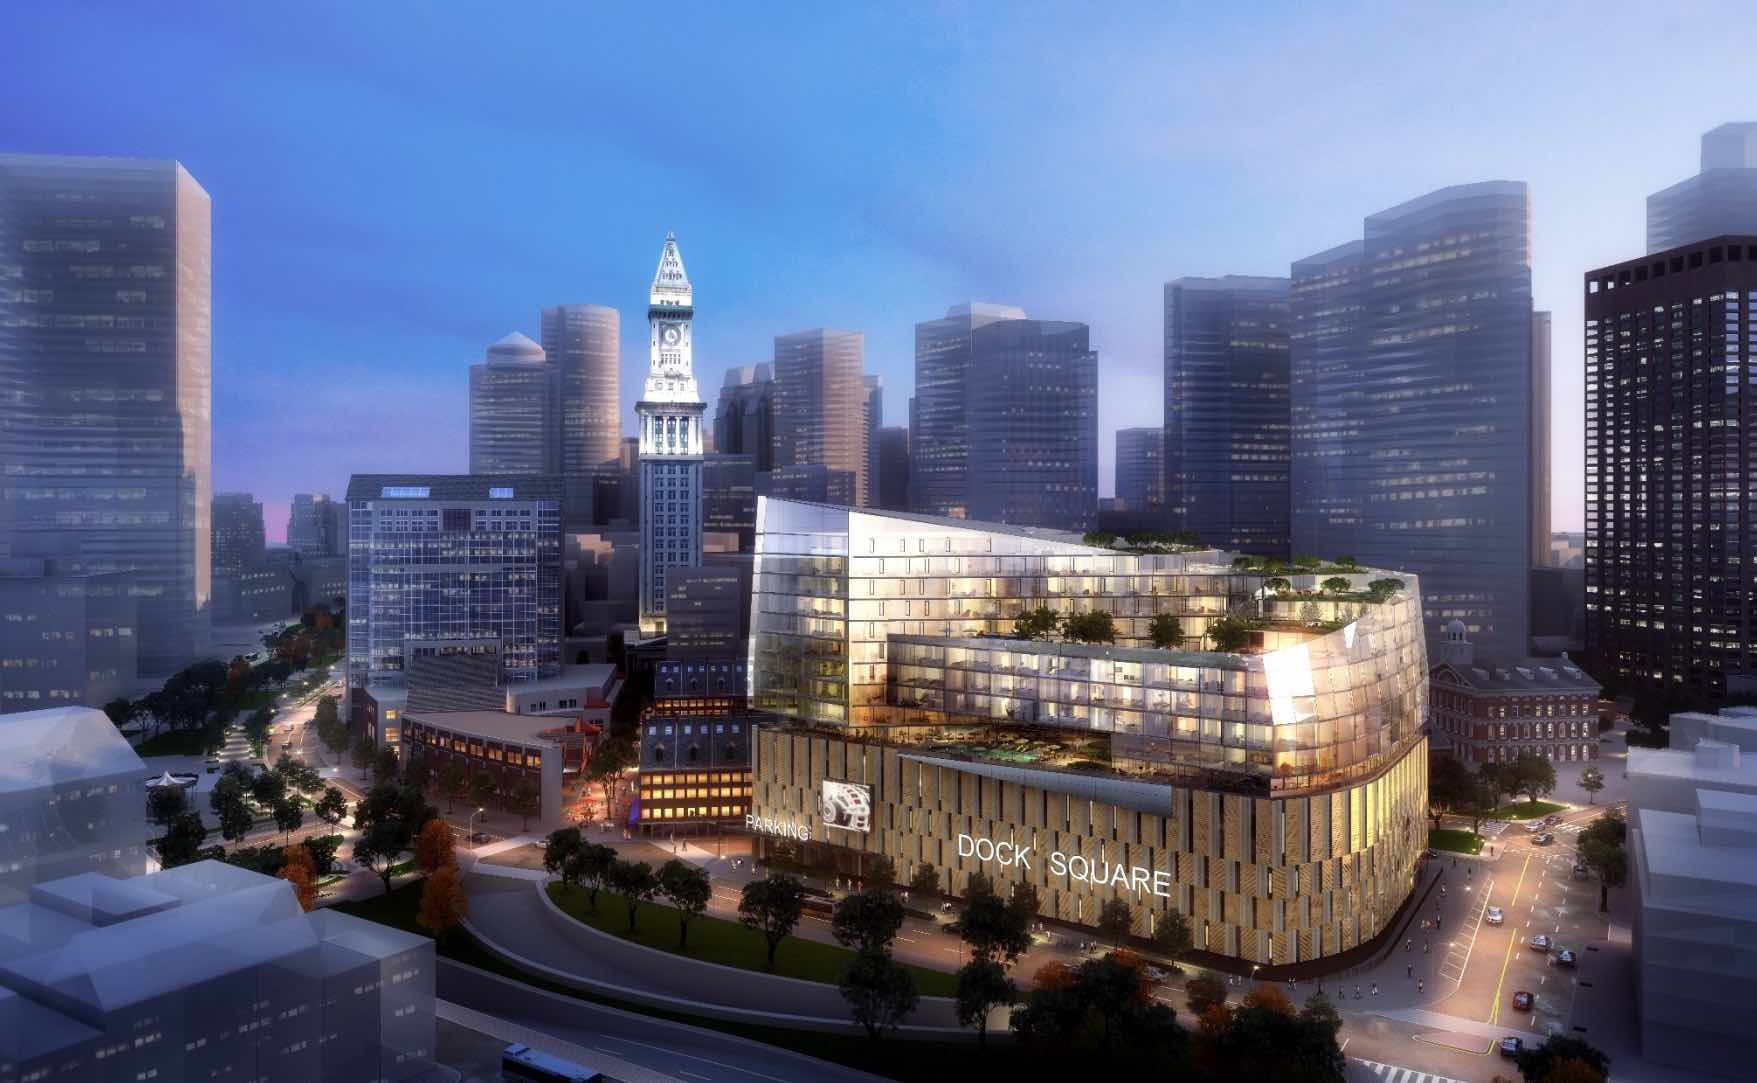 Dock square parking garage real estate development site for sale bulfinch triangle boston